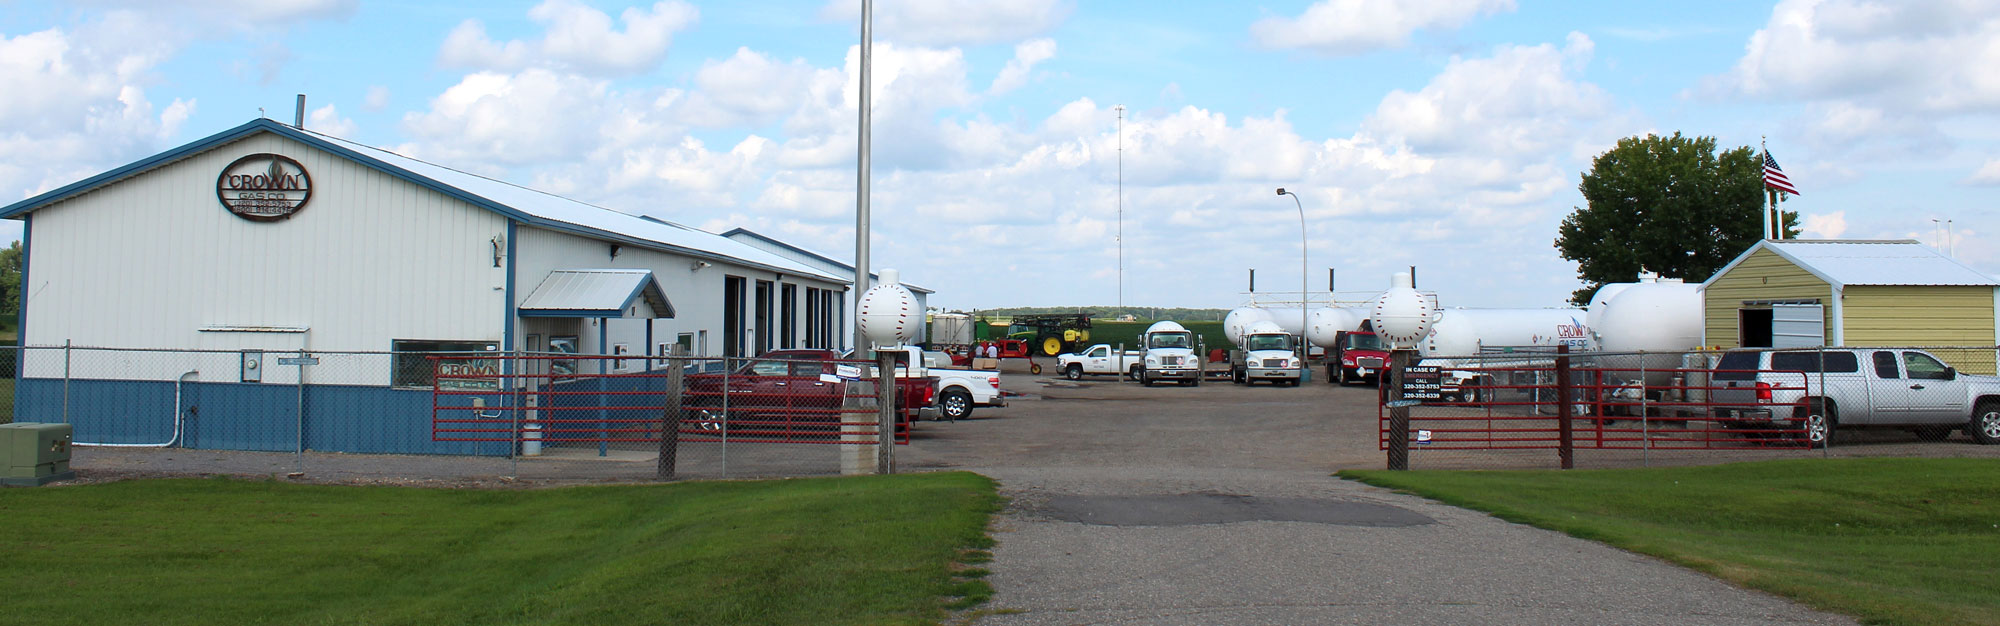 Crown Gas property showcasing the company building, propane tanks, and delivery trucks